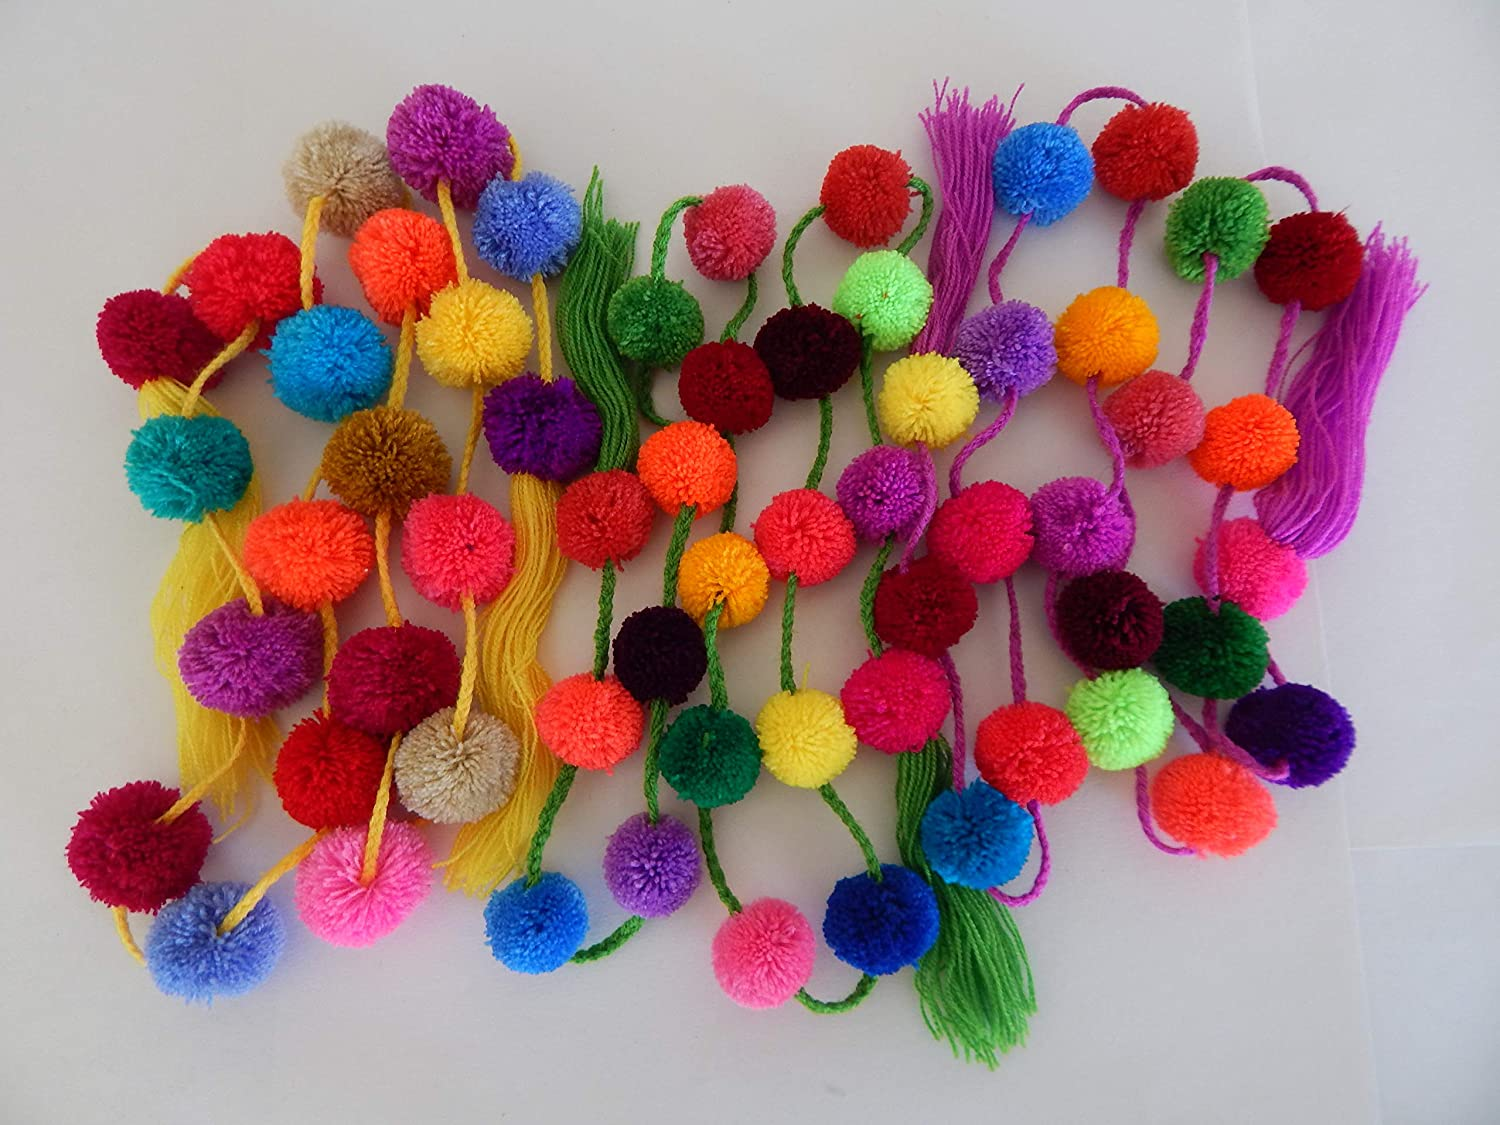 Azuleho - Mexican Pom Pom Garland - 3 Assorted PCS - Mexican Fiesta Party Decoration - Cinco de Mayo Decor - Party Supplies - Yarn Party Pom Poms - Home Décor Supplies